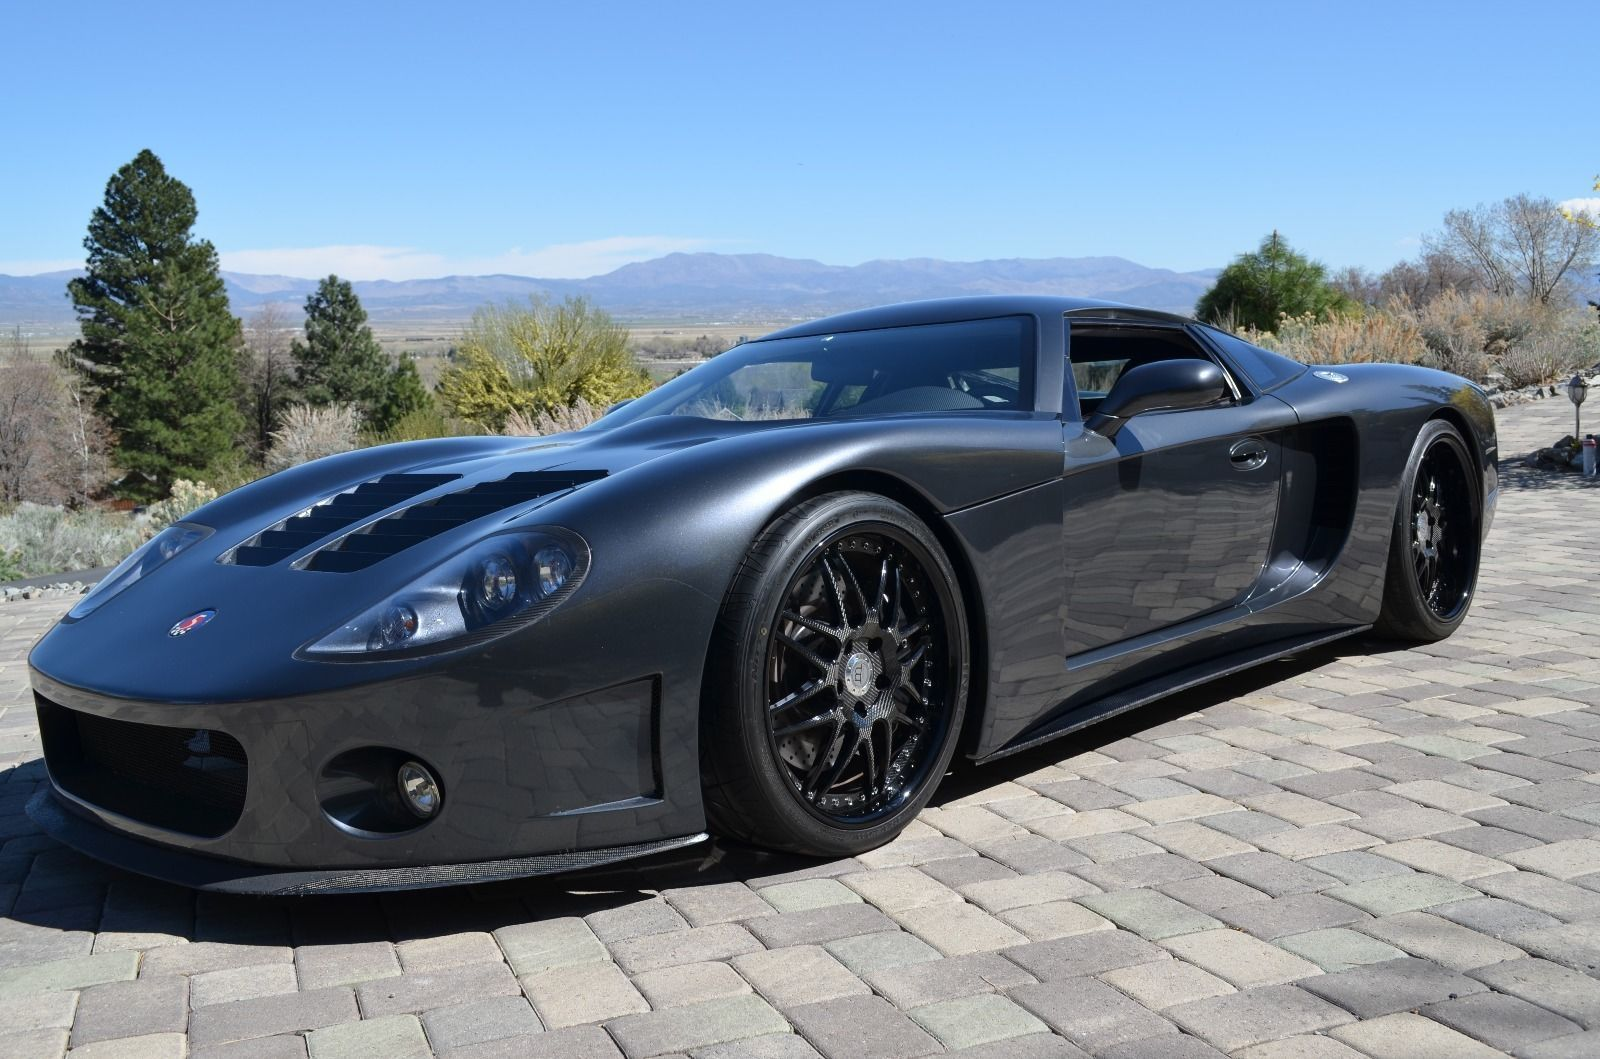 The next factory five kit car includes subaru page 5 grassroots - 2009 Factory Five Racining Gtm Supercar